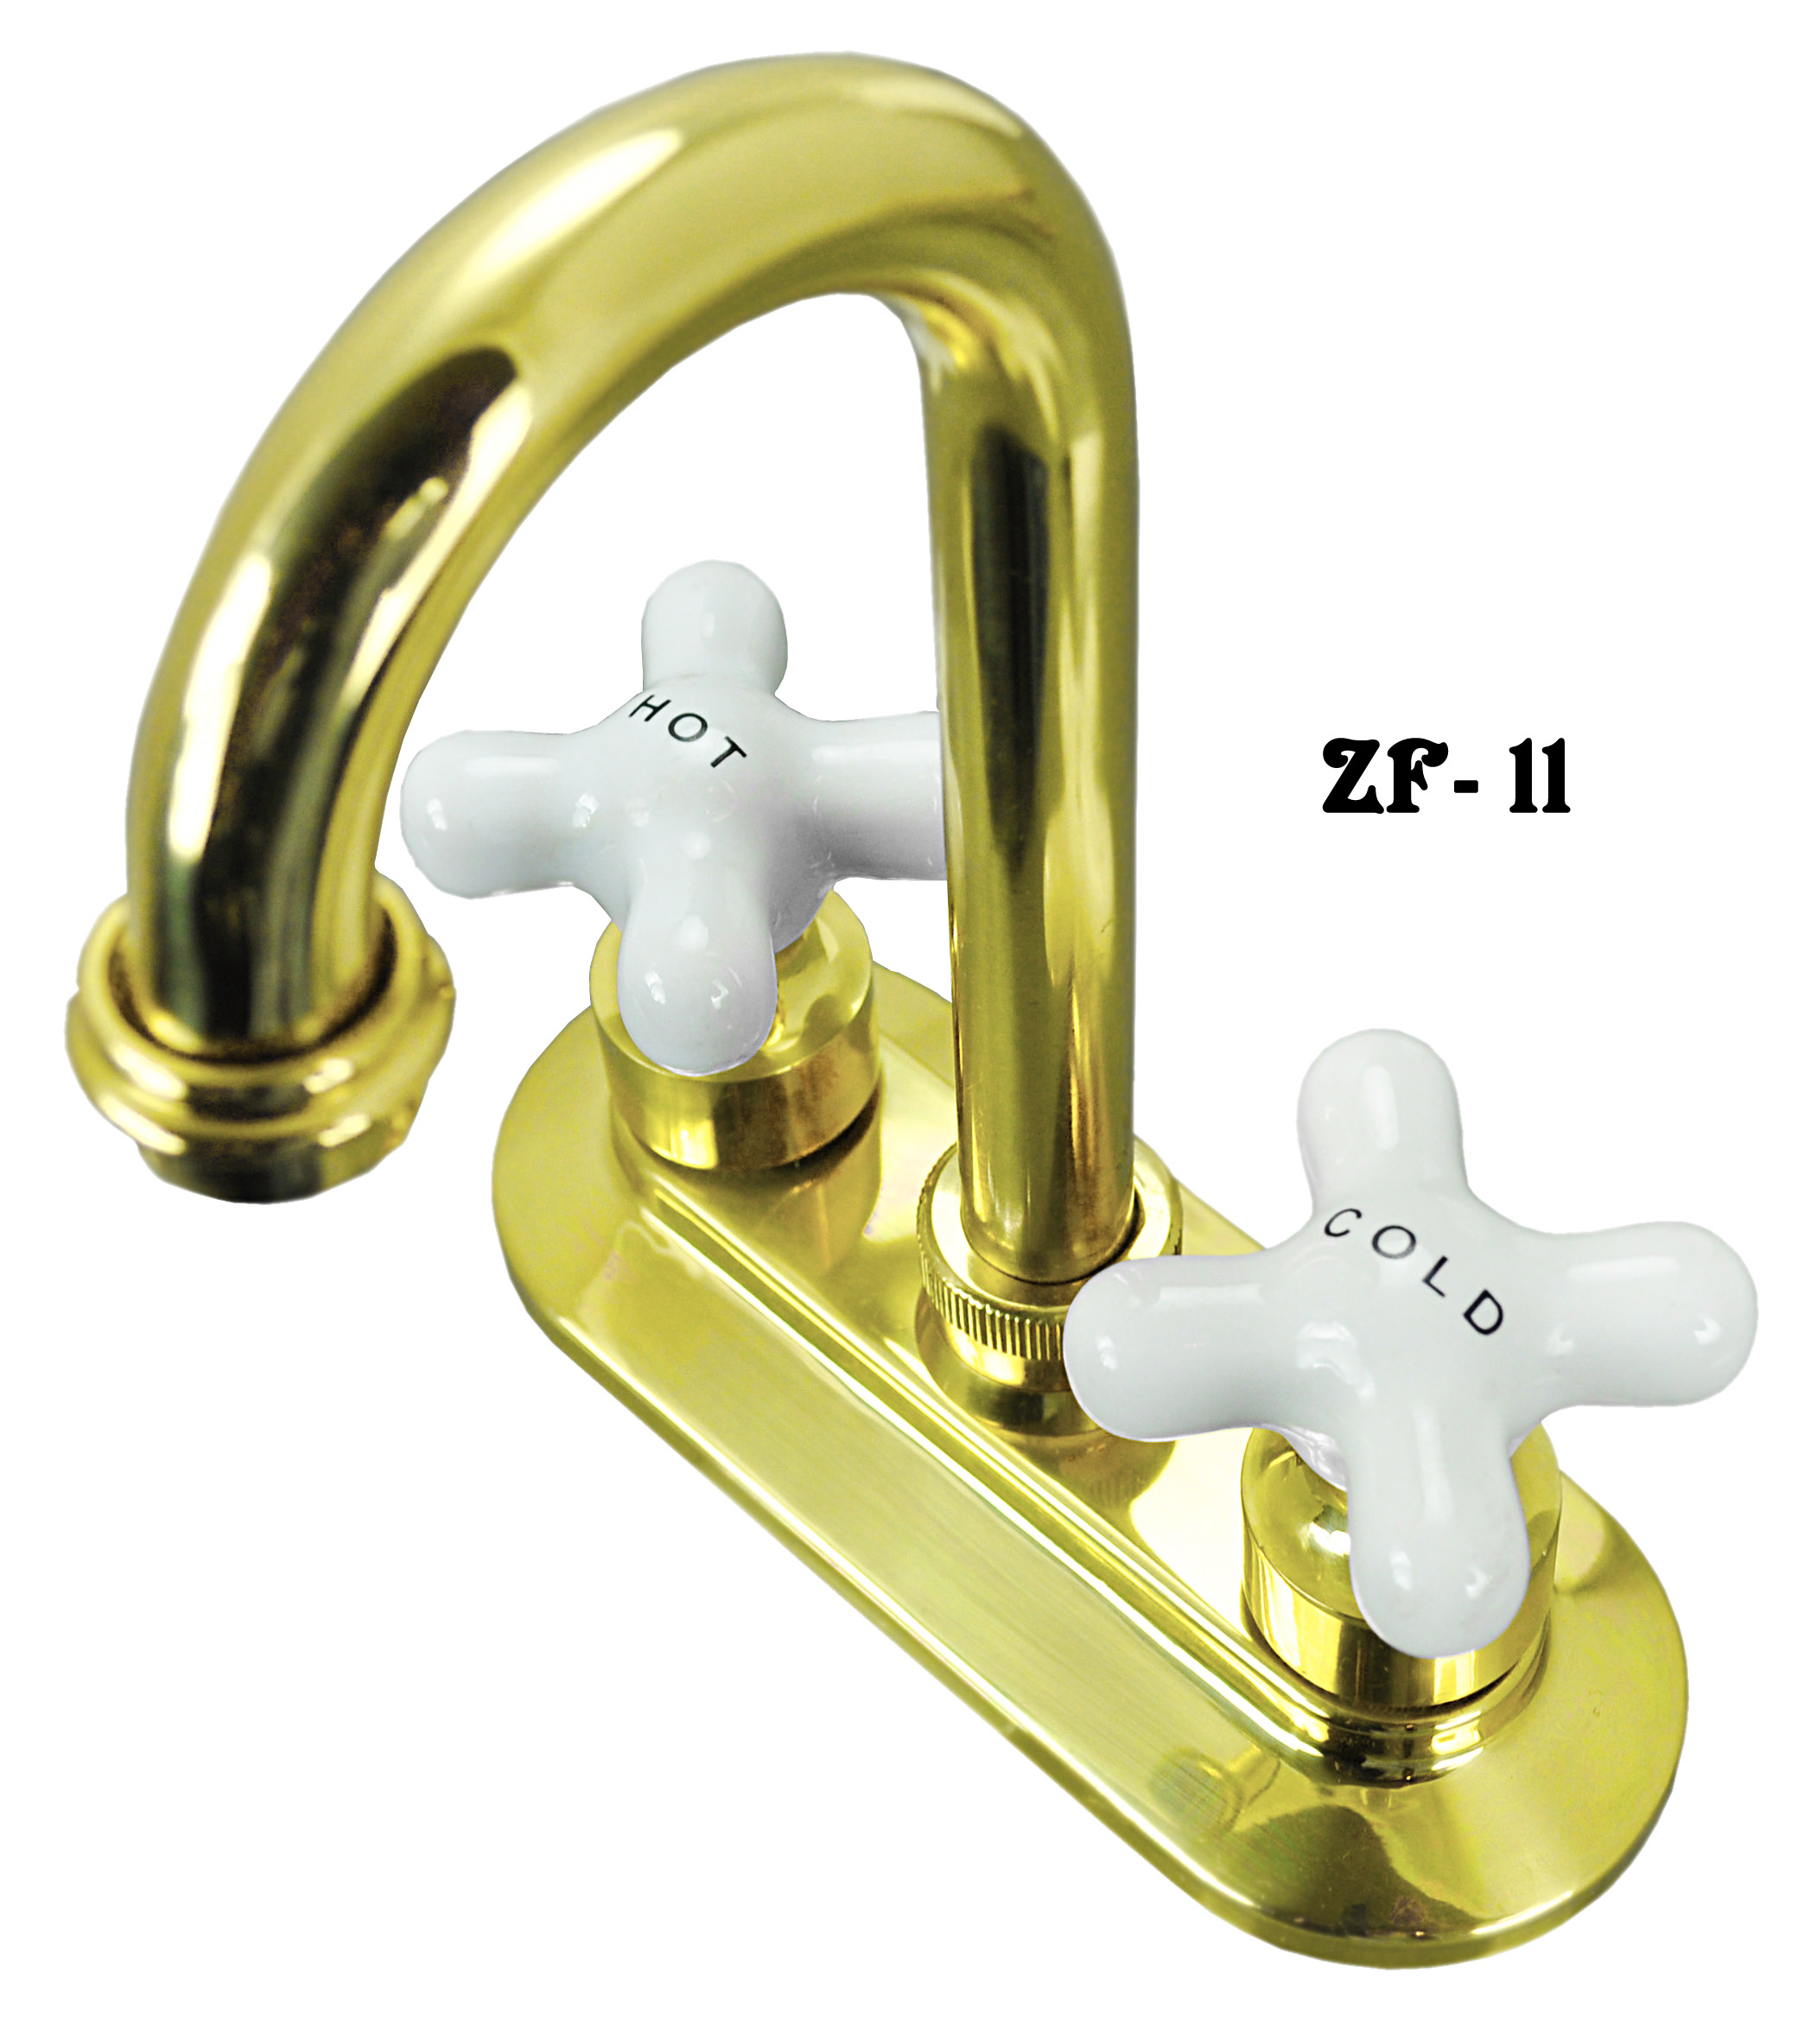 Vintage Hardware U0026 Lighting   Brass Wet Bar Sink Faucet With Porcelain Hot  And Cold Knobs (ZF 11)